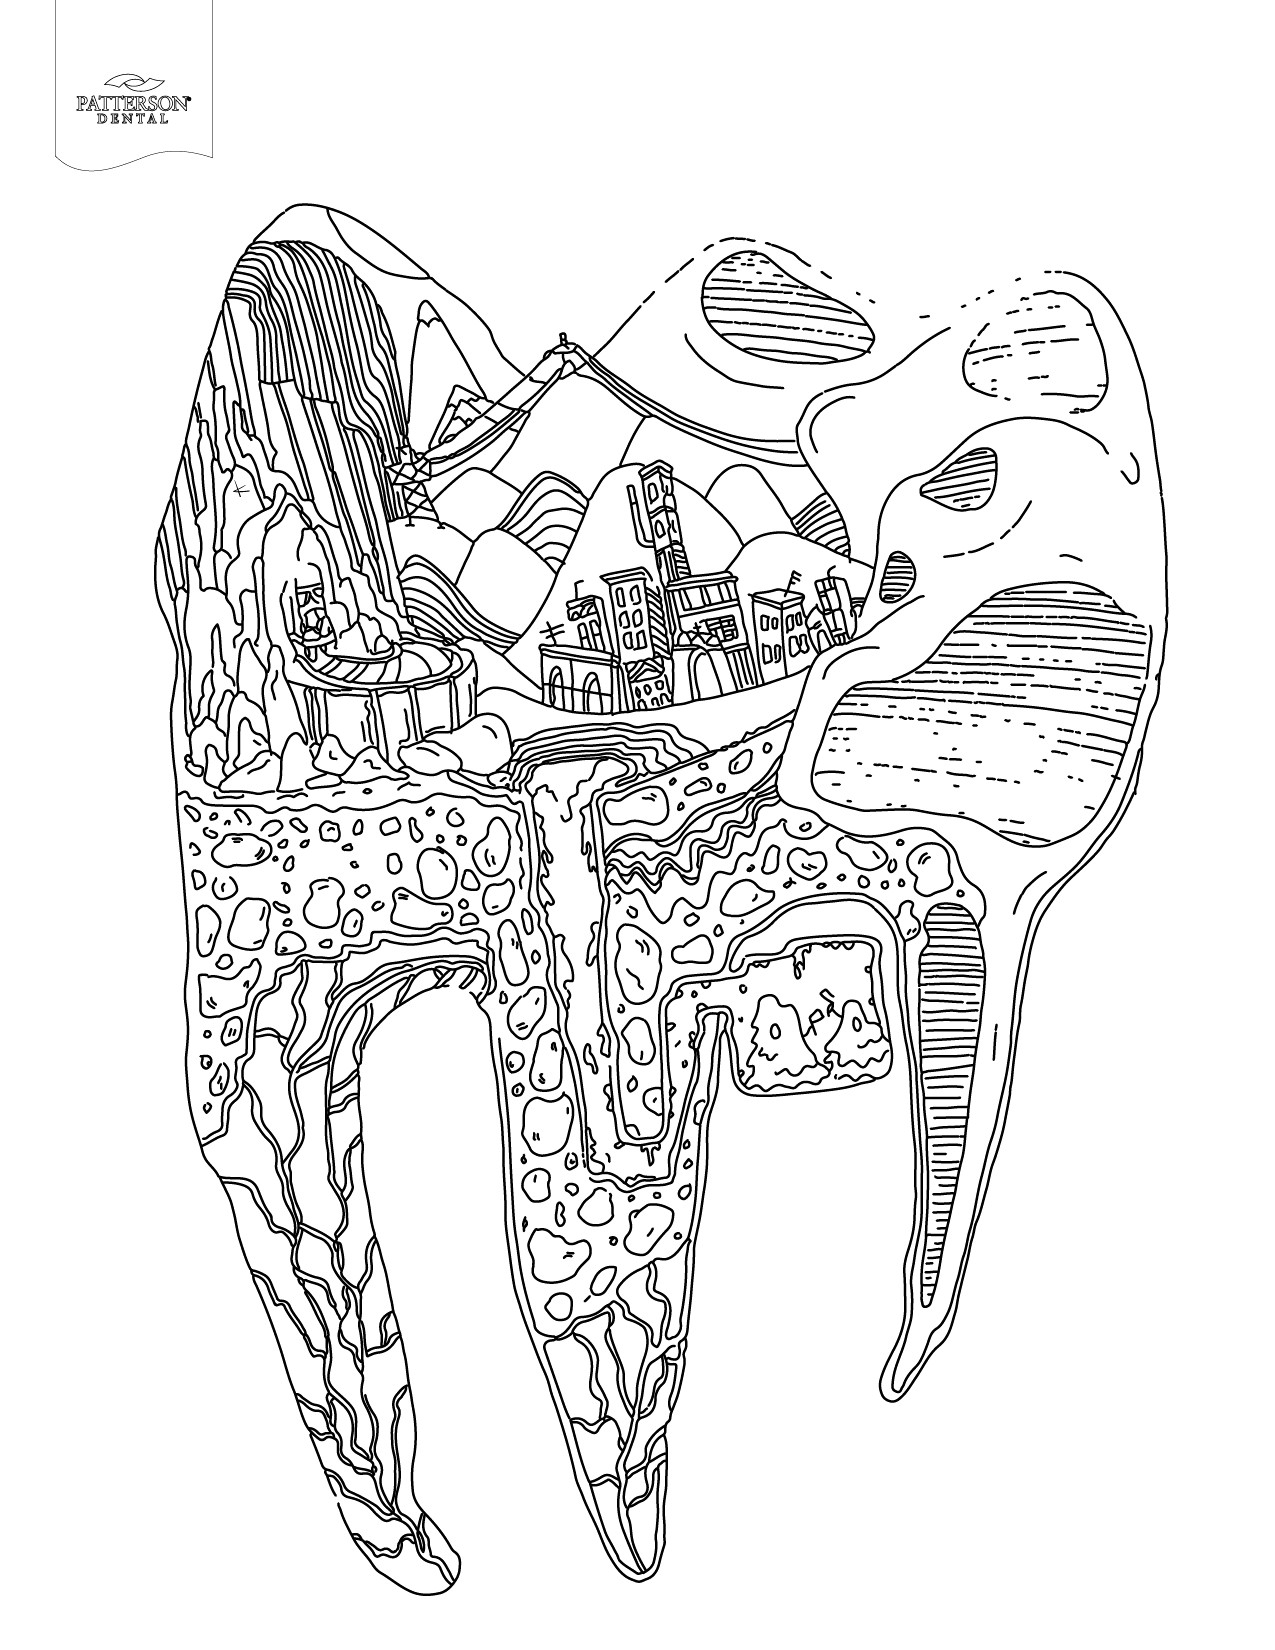 25+ Inspiration Image of Tooth Coloring Pages ...